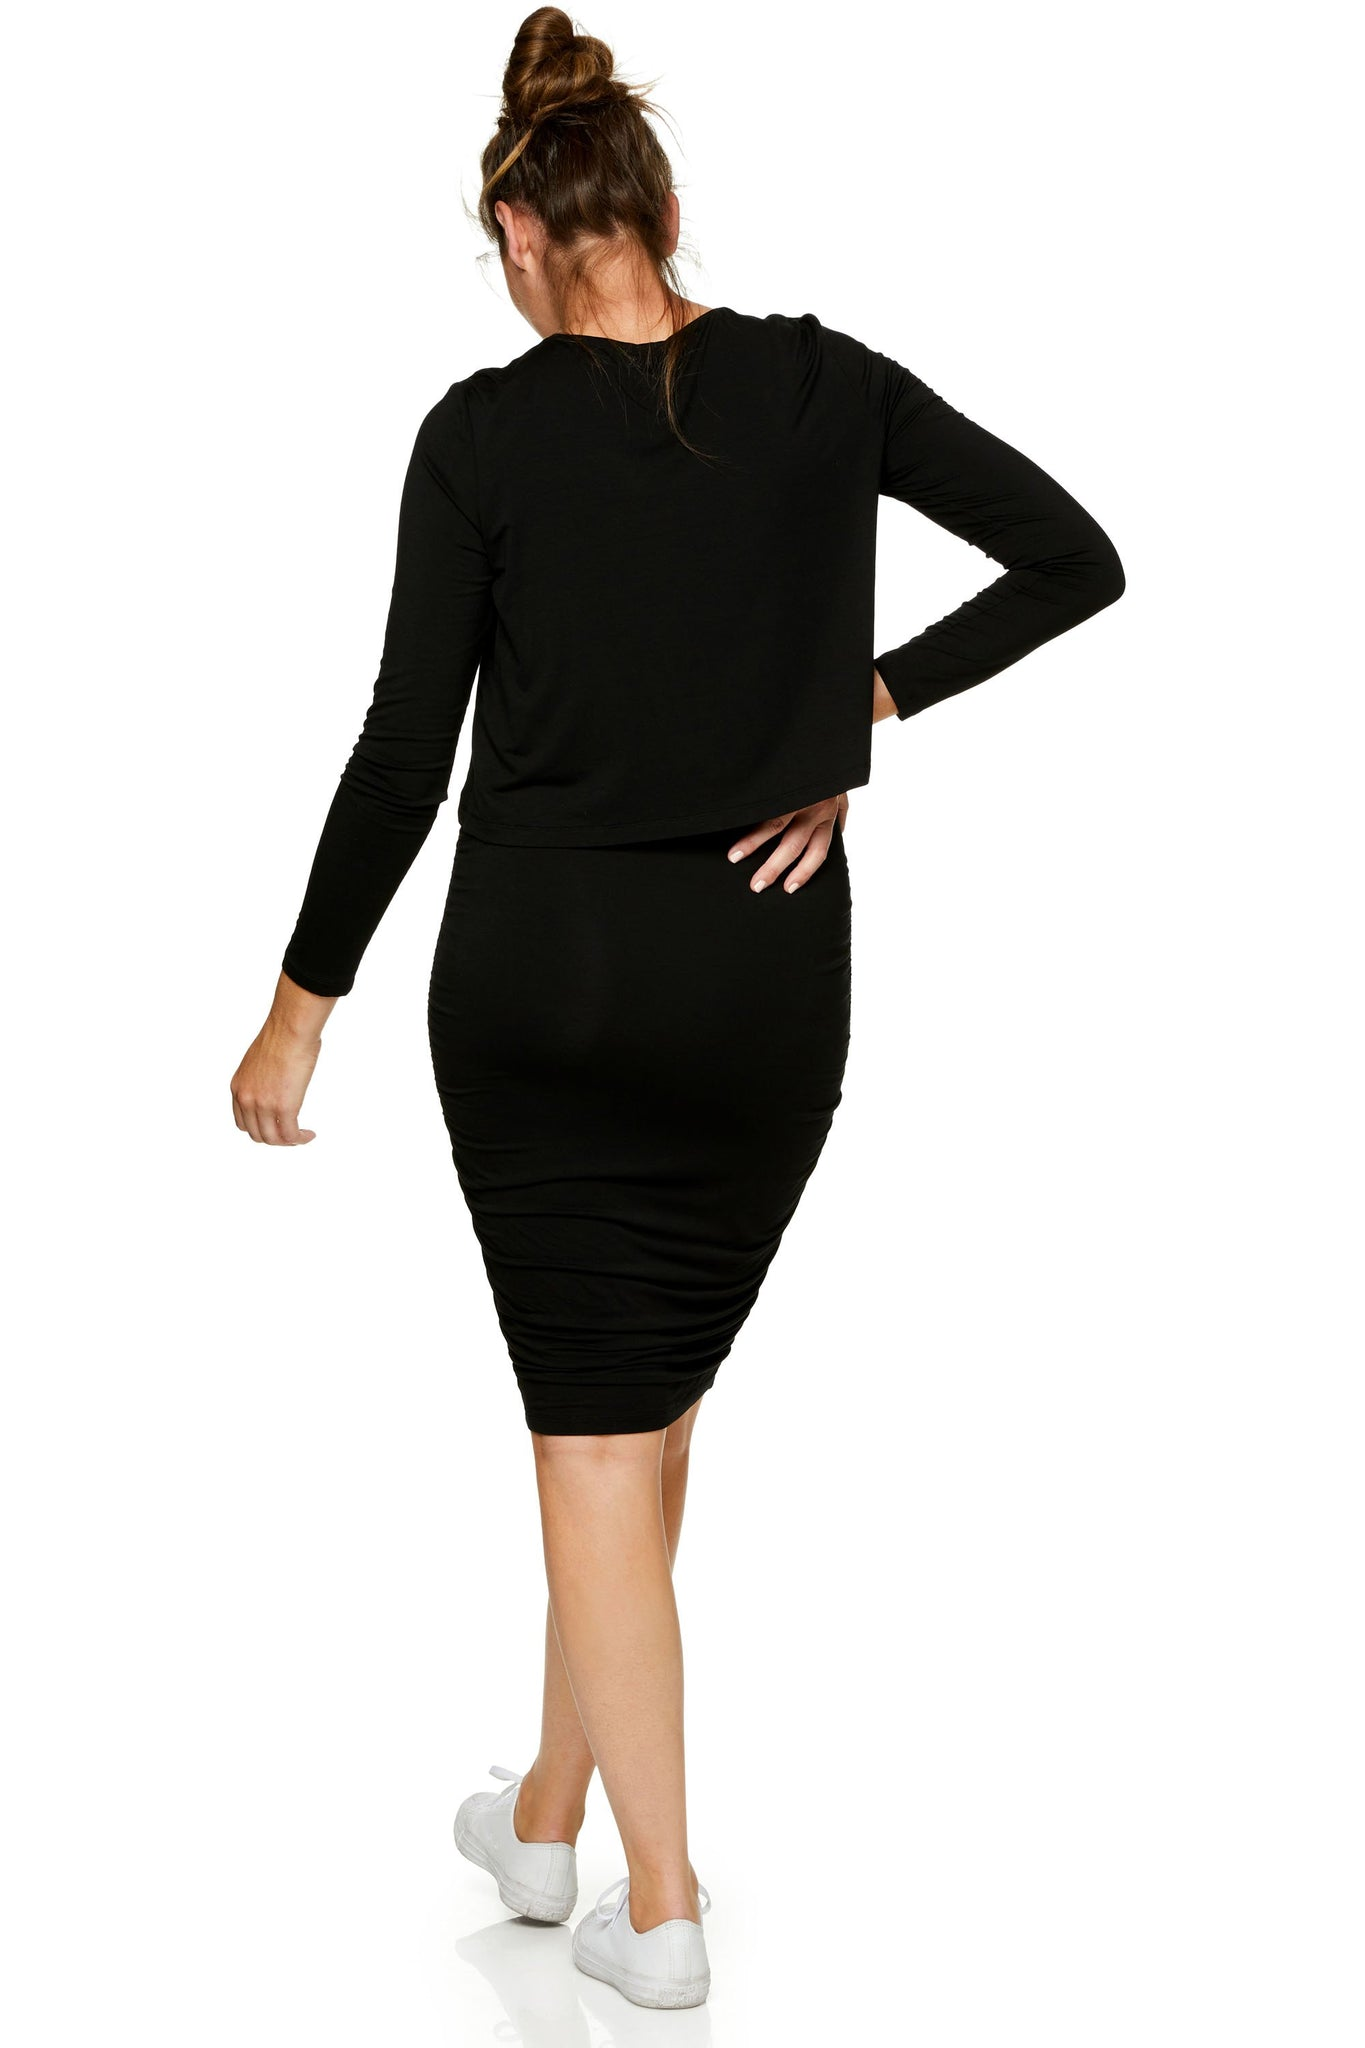 Long sleeve maternity and nursing dress - Black 8